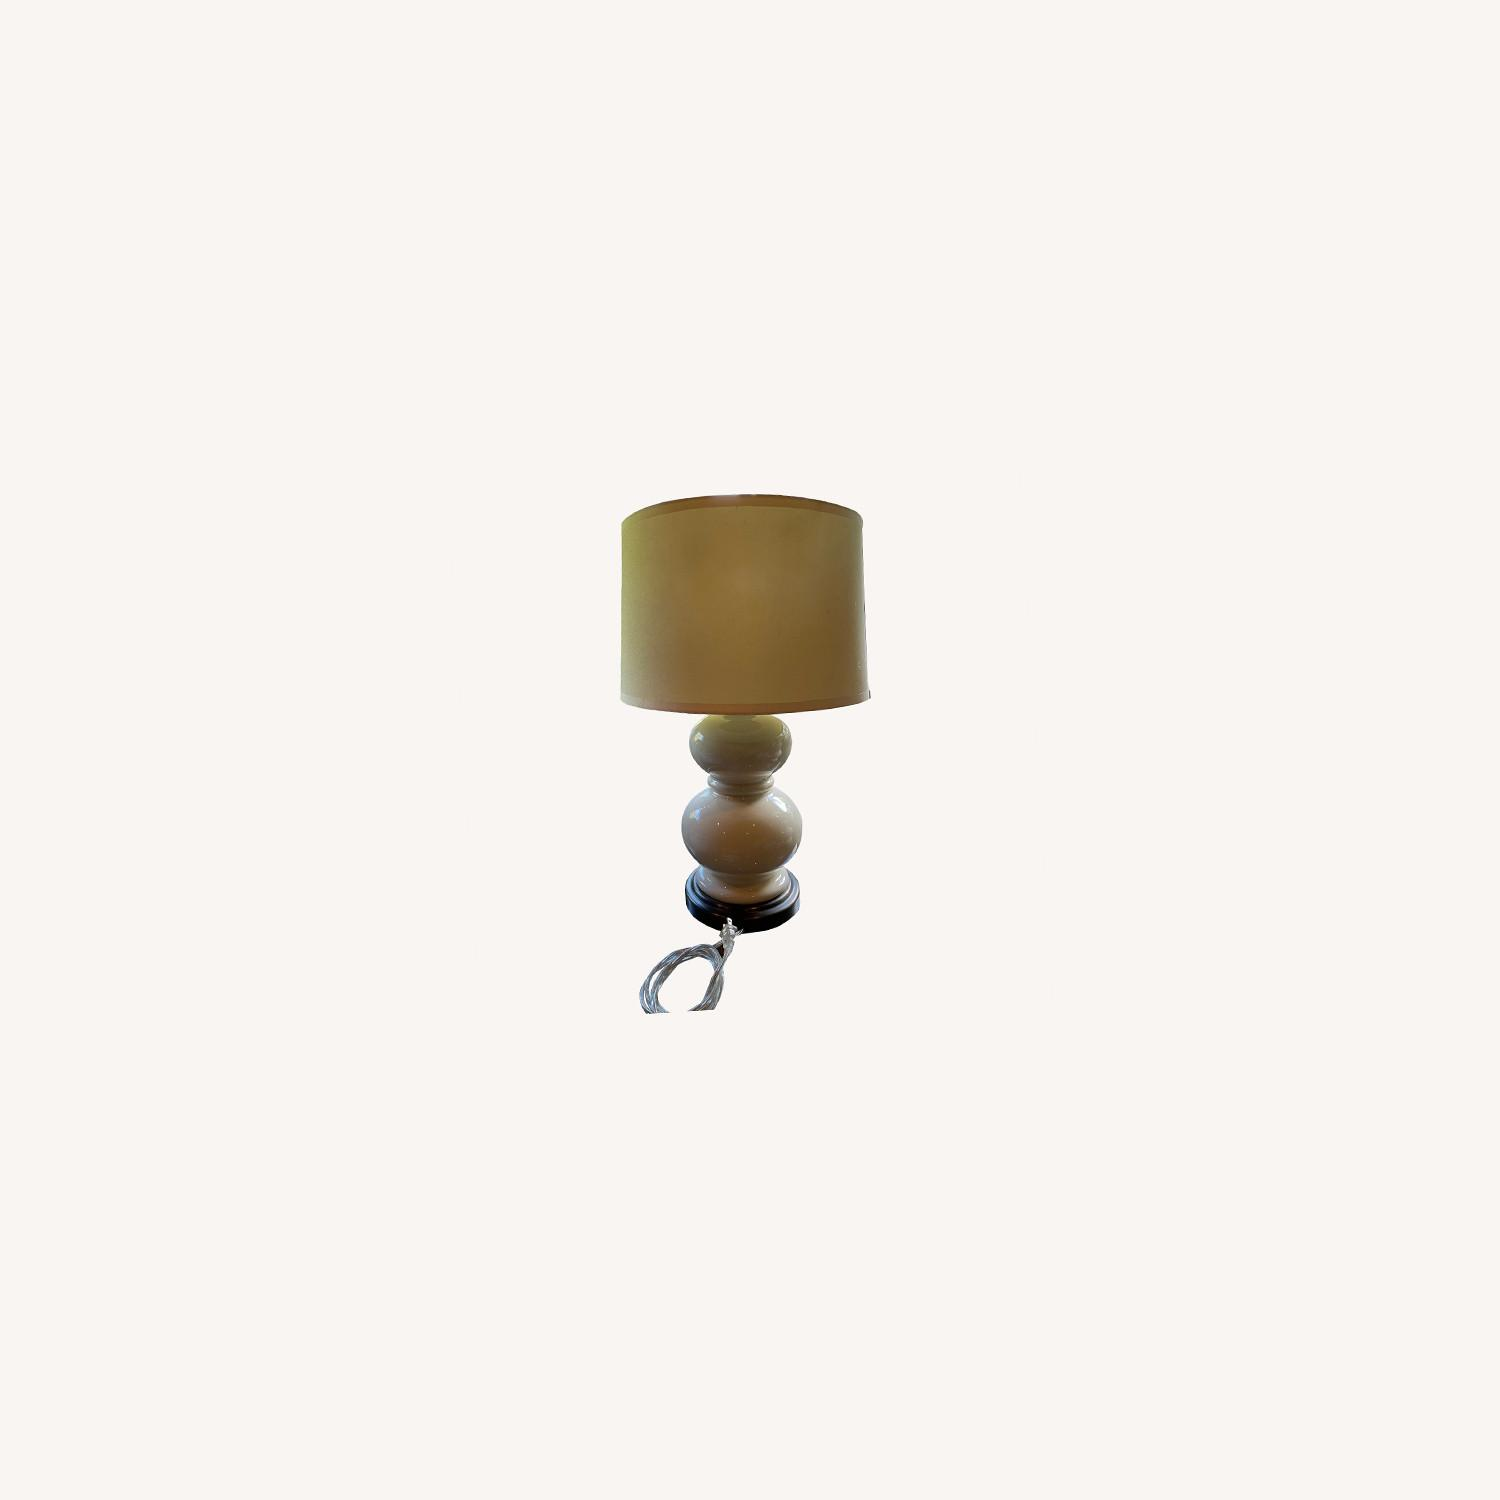 Pottery Barn Table Lamps - image-0